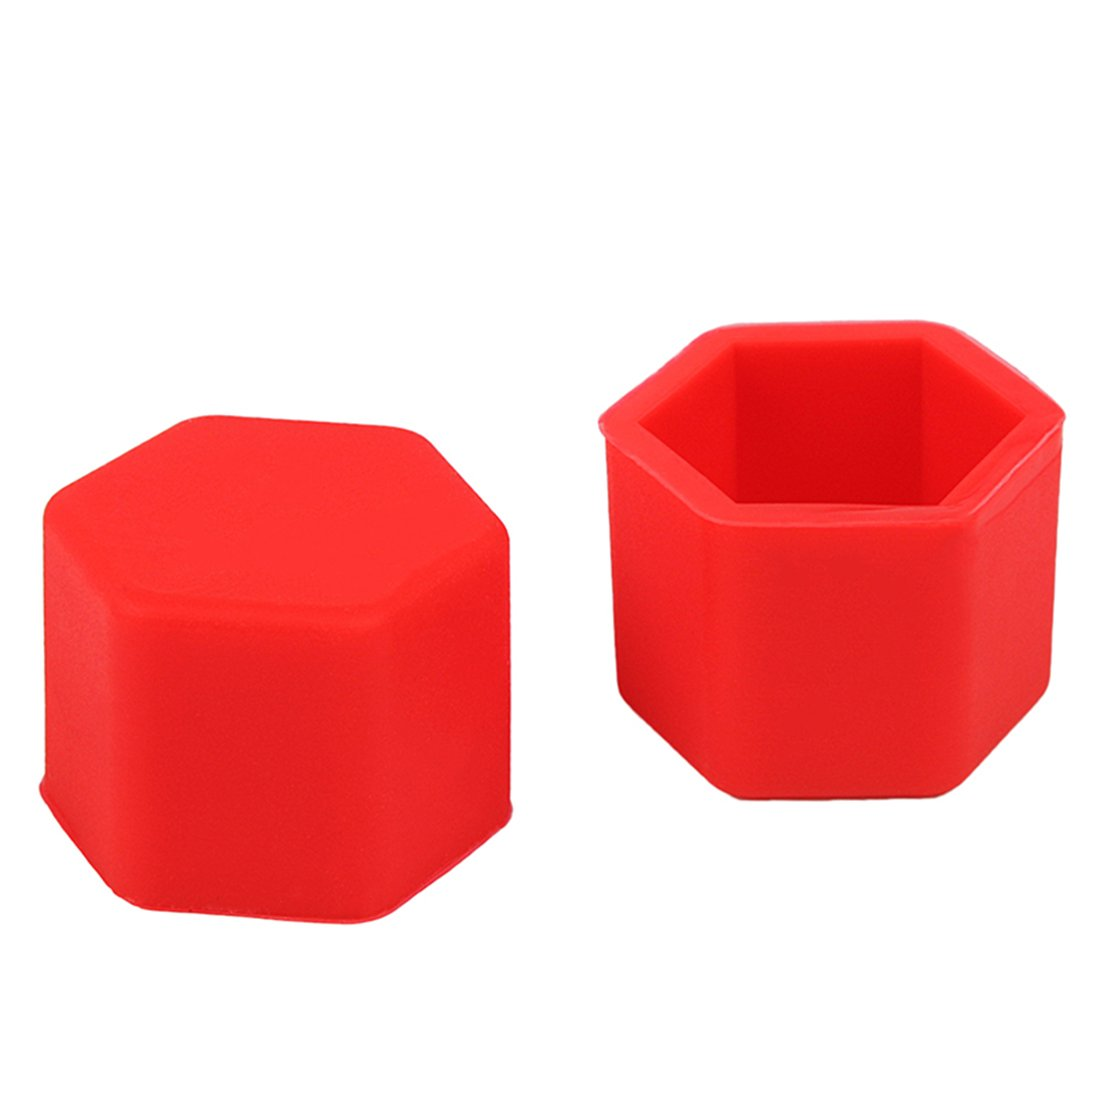 Red Larcele Silicone Wheel Lug Nut Covers 17mm 20PCS LSBHT-01